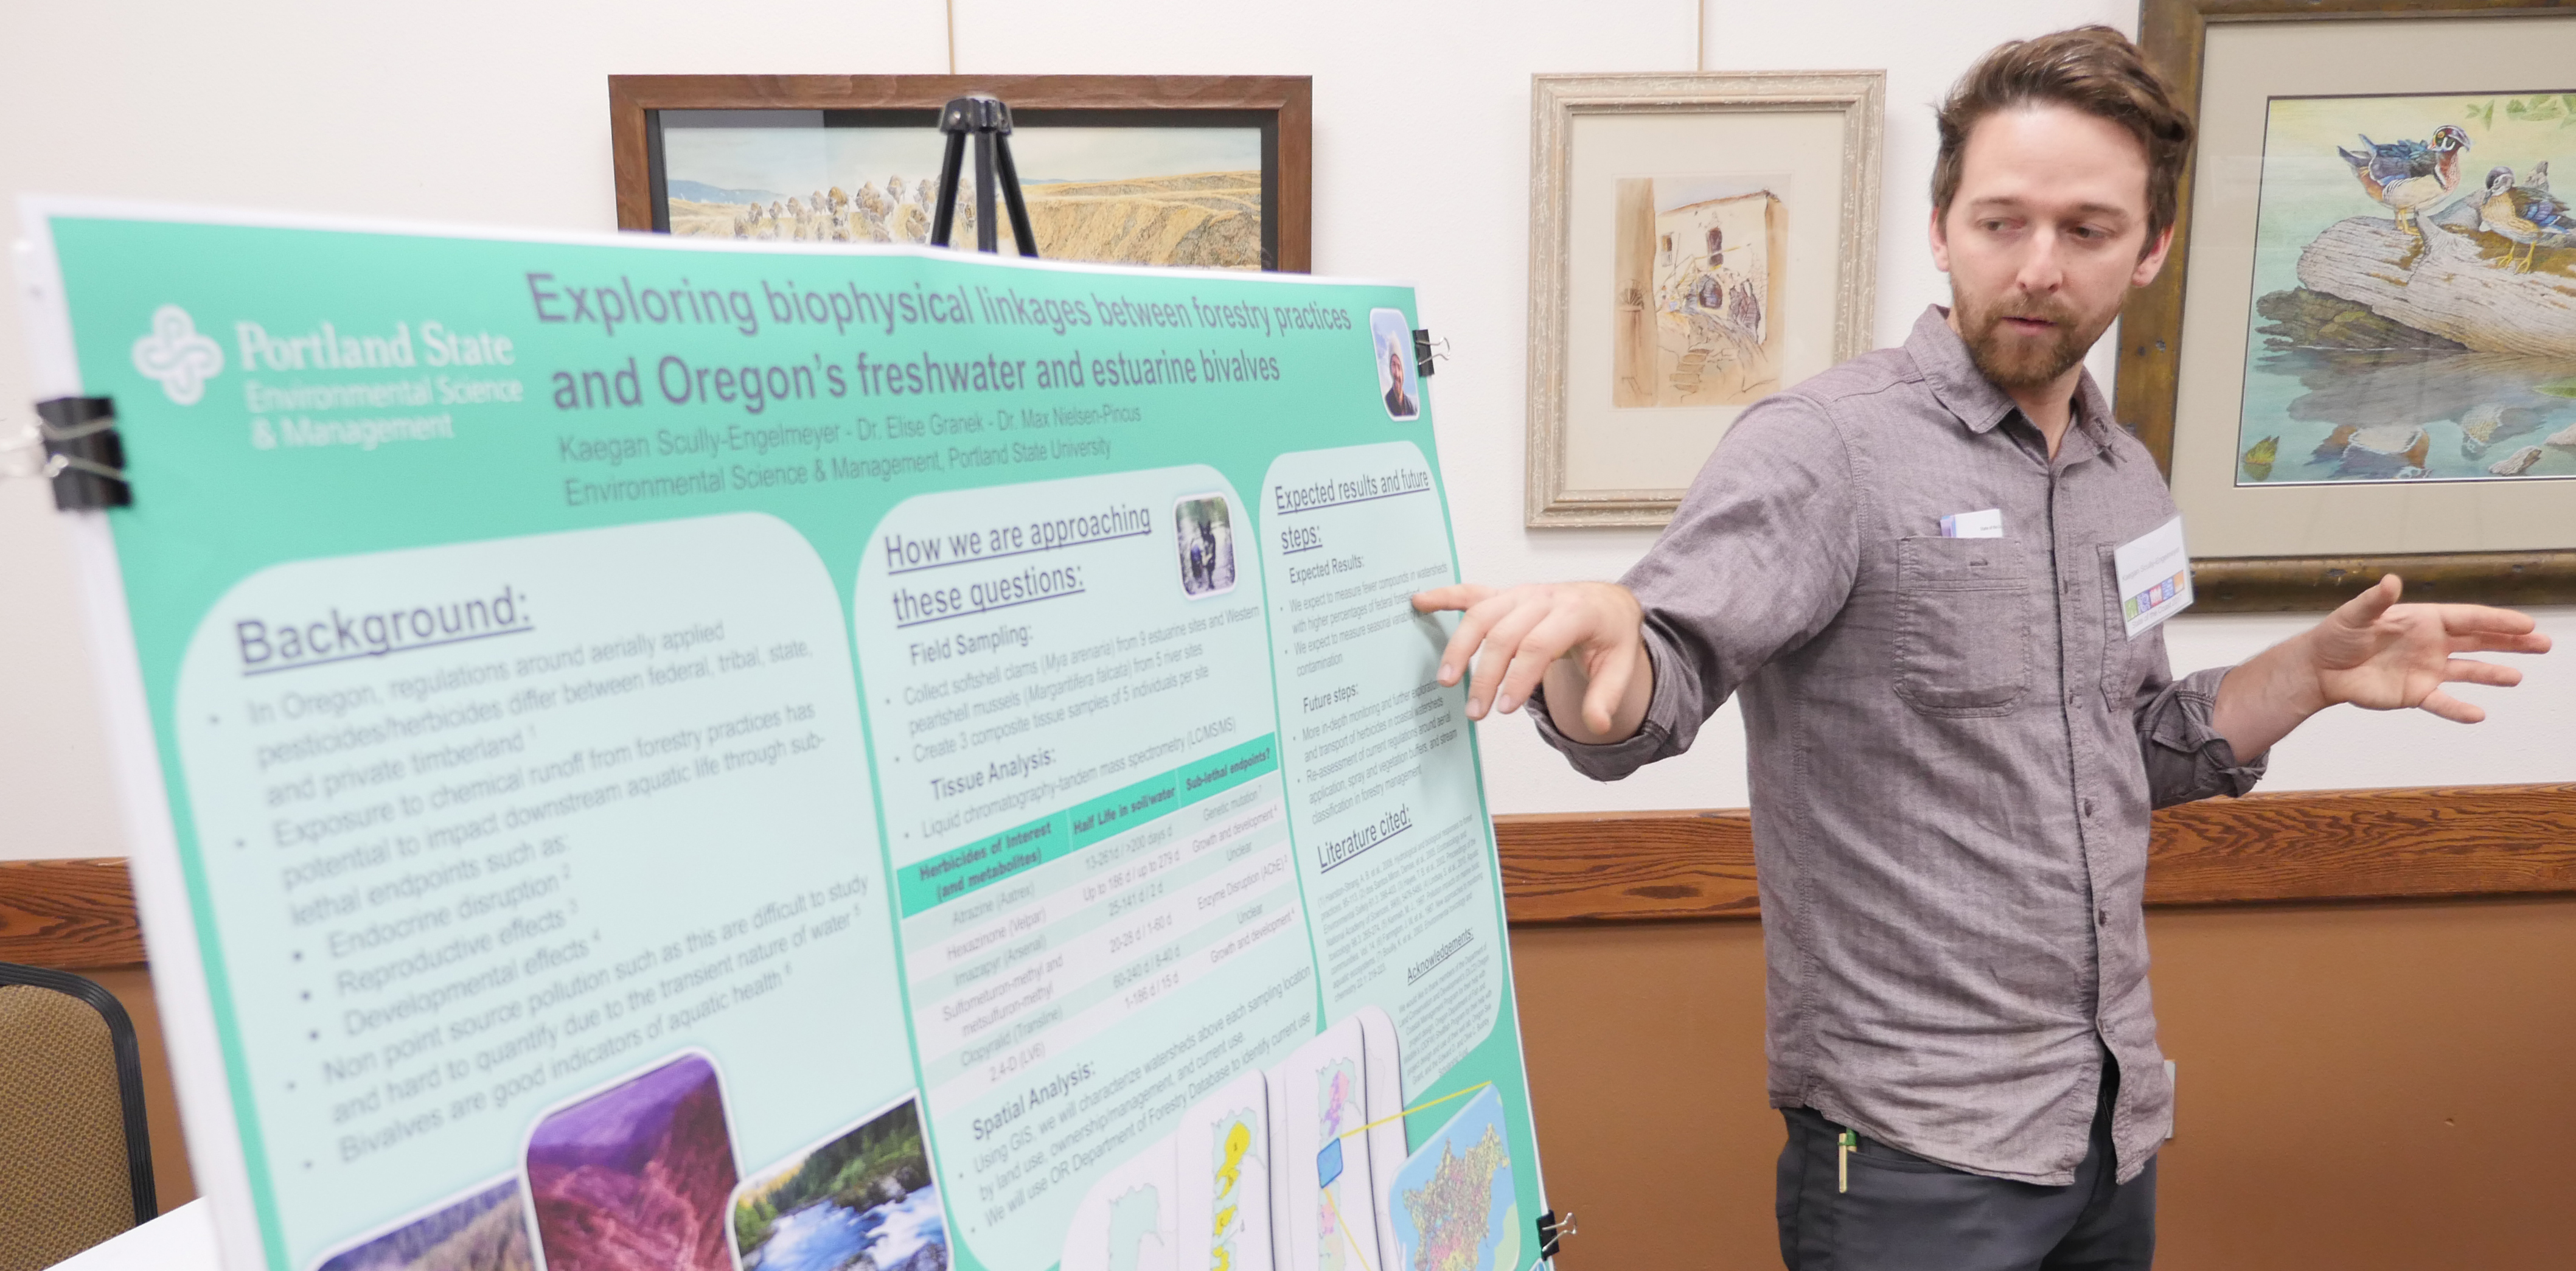 Kaegan Scully-Engelmeyer explains his research while standing in front of a poster